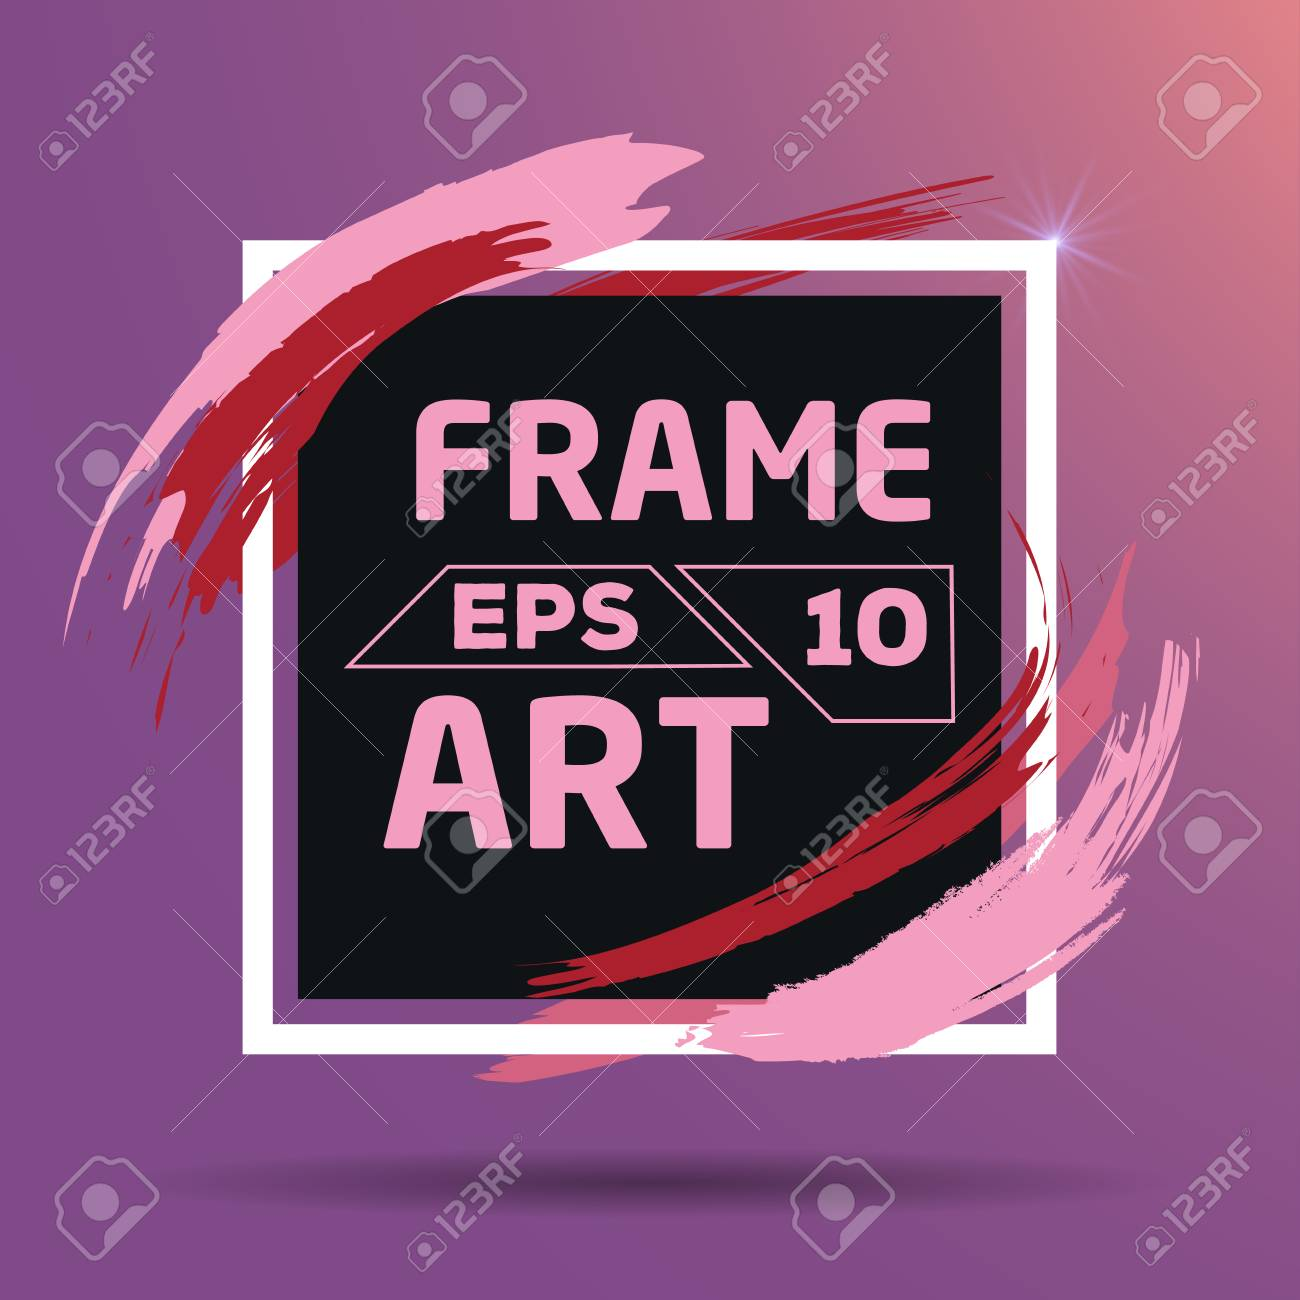 Square With Color Red And Pink Brush Frame Art Background Flat Royalty Free Cliparts Vectors And Stock Illustration Image 76859174